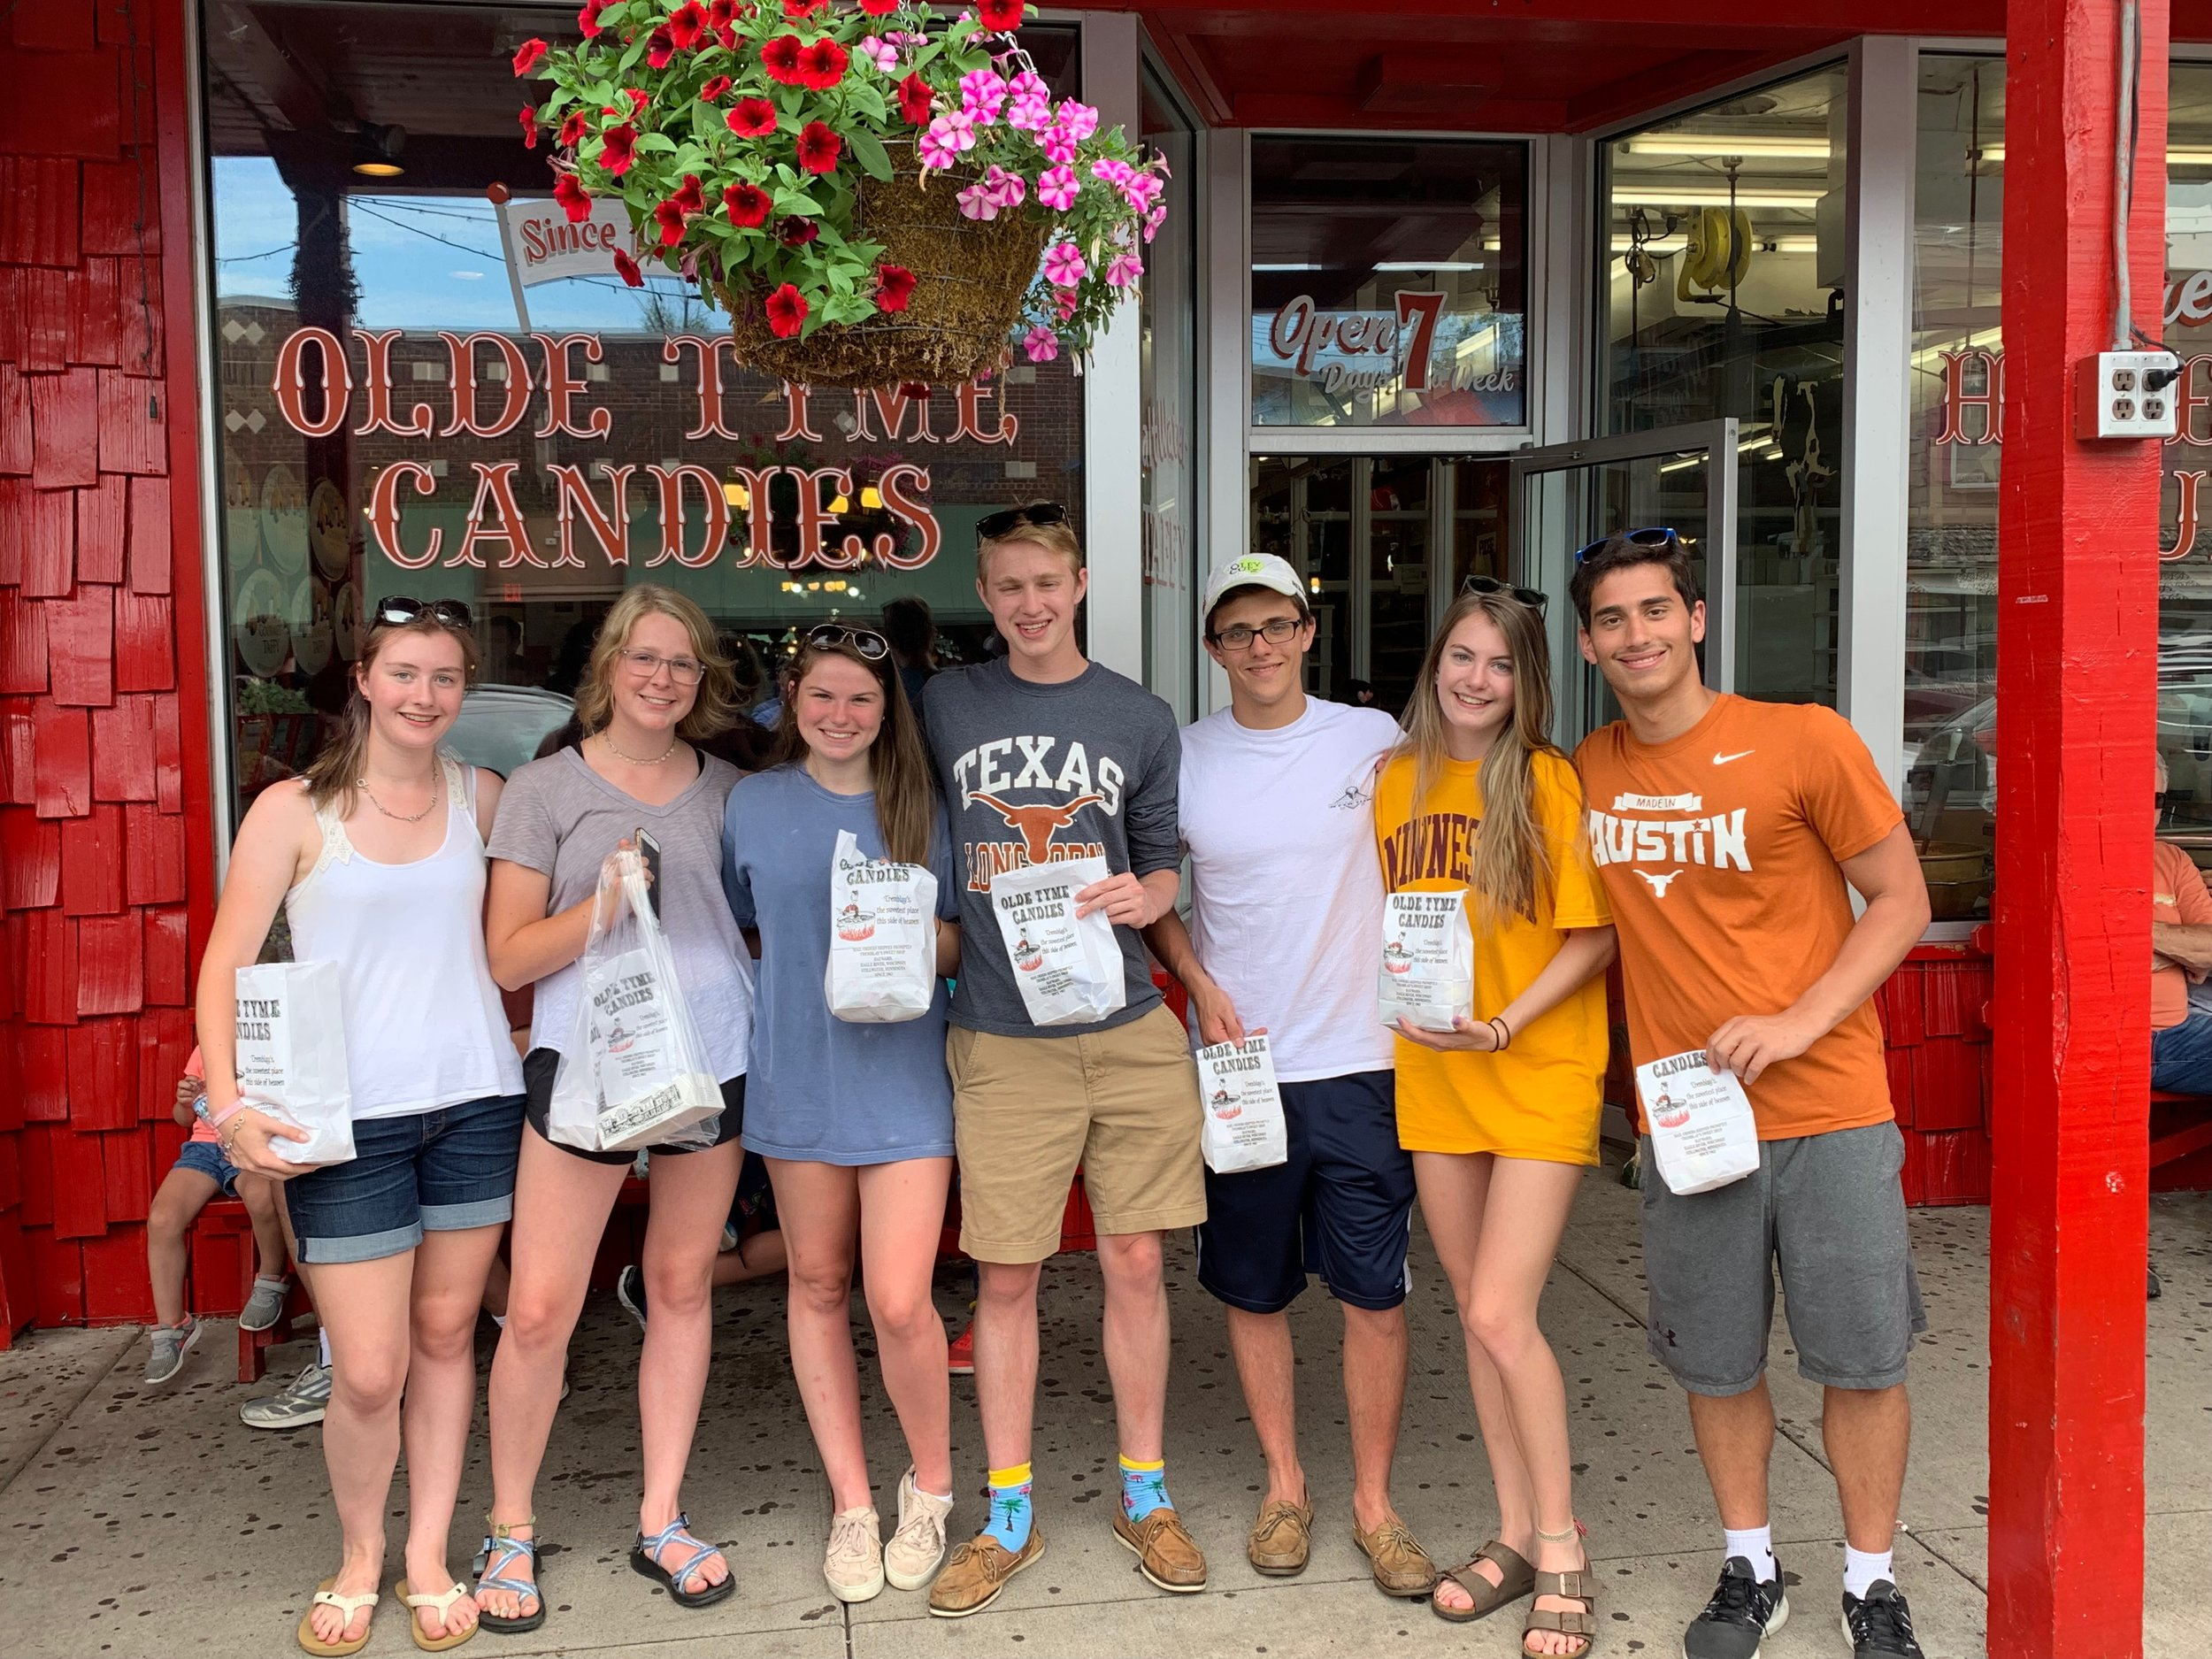 Earlier this summer I brought some friends from Texas to Hayward and we visited Tremblay's -